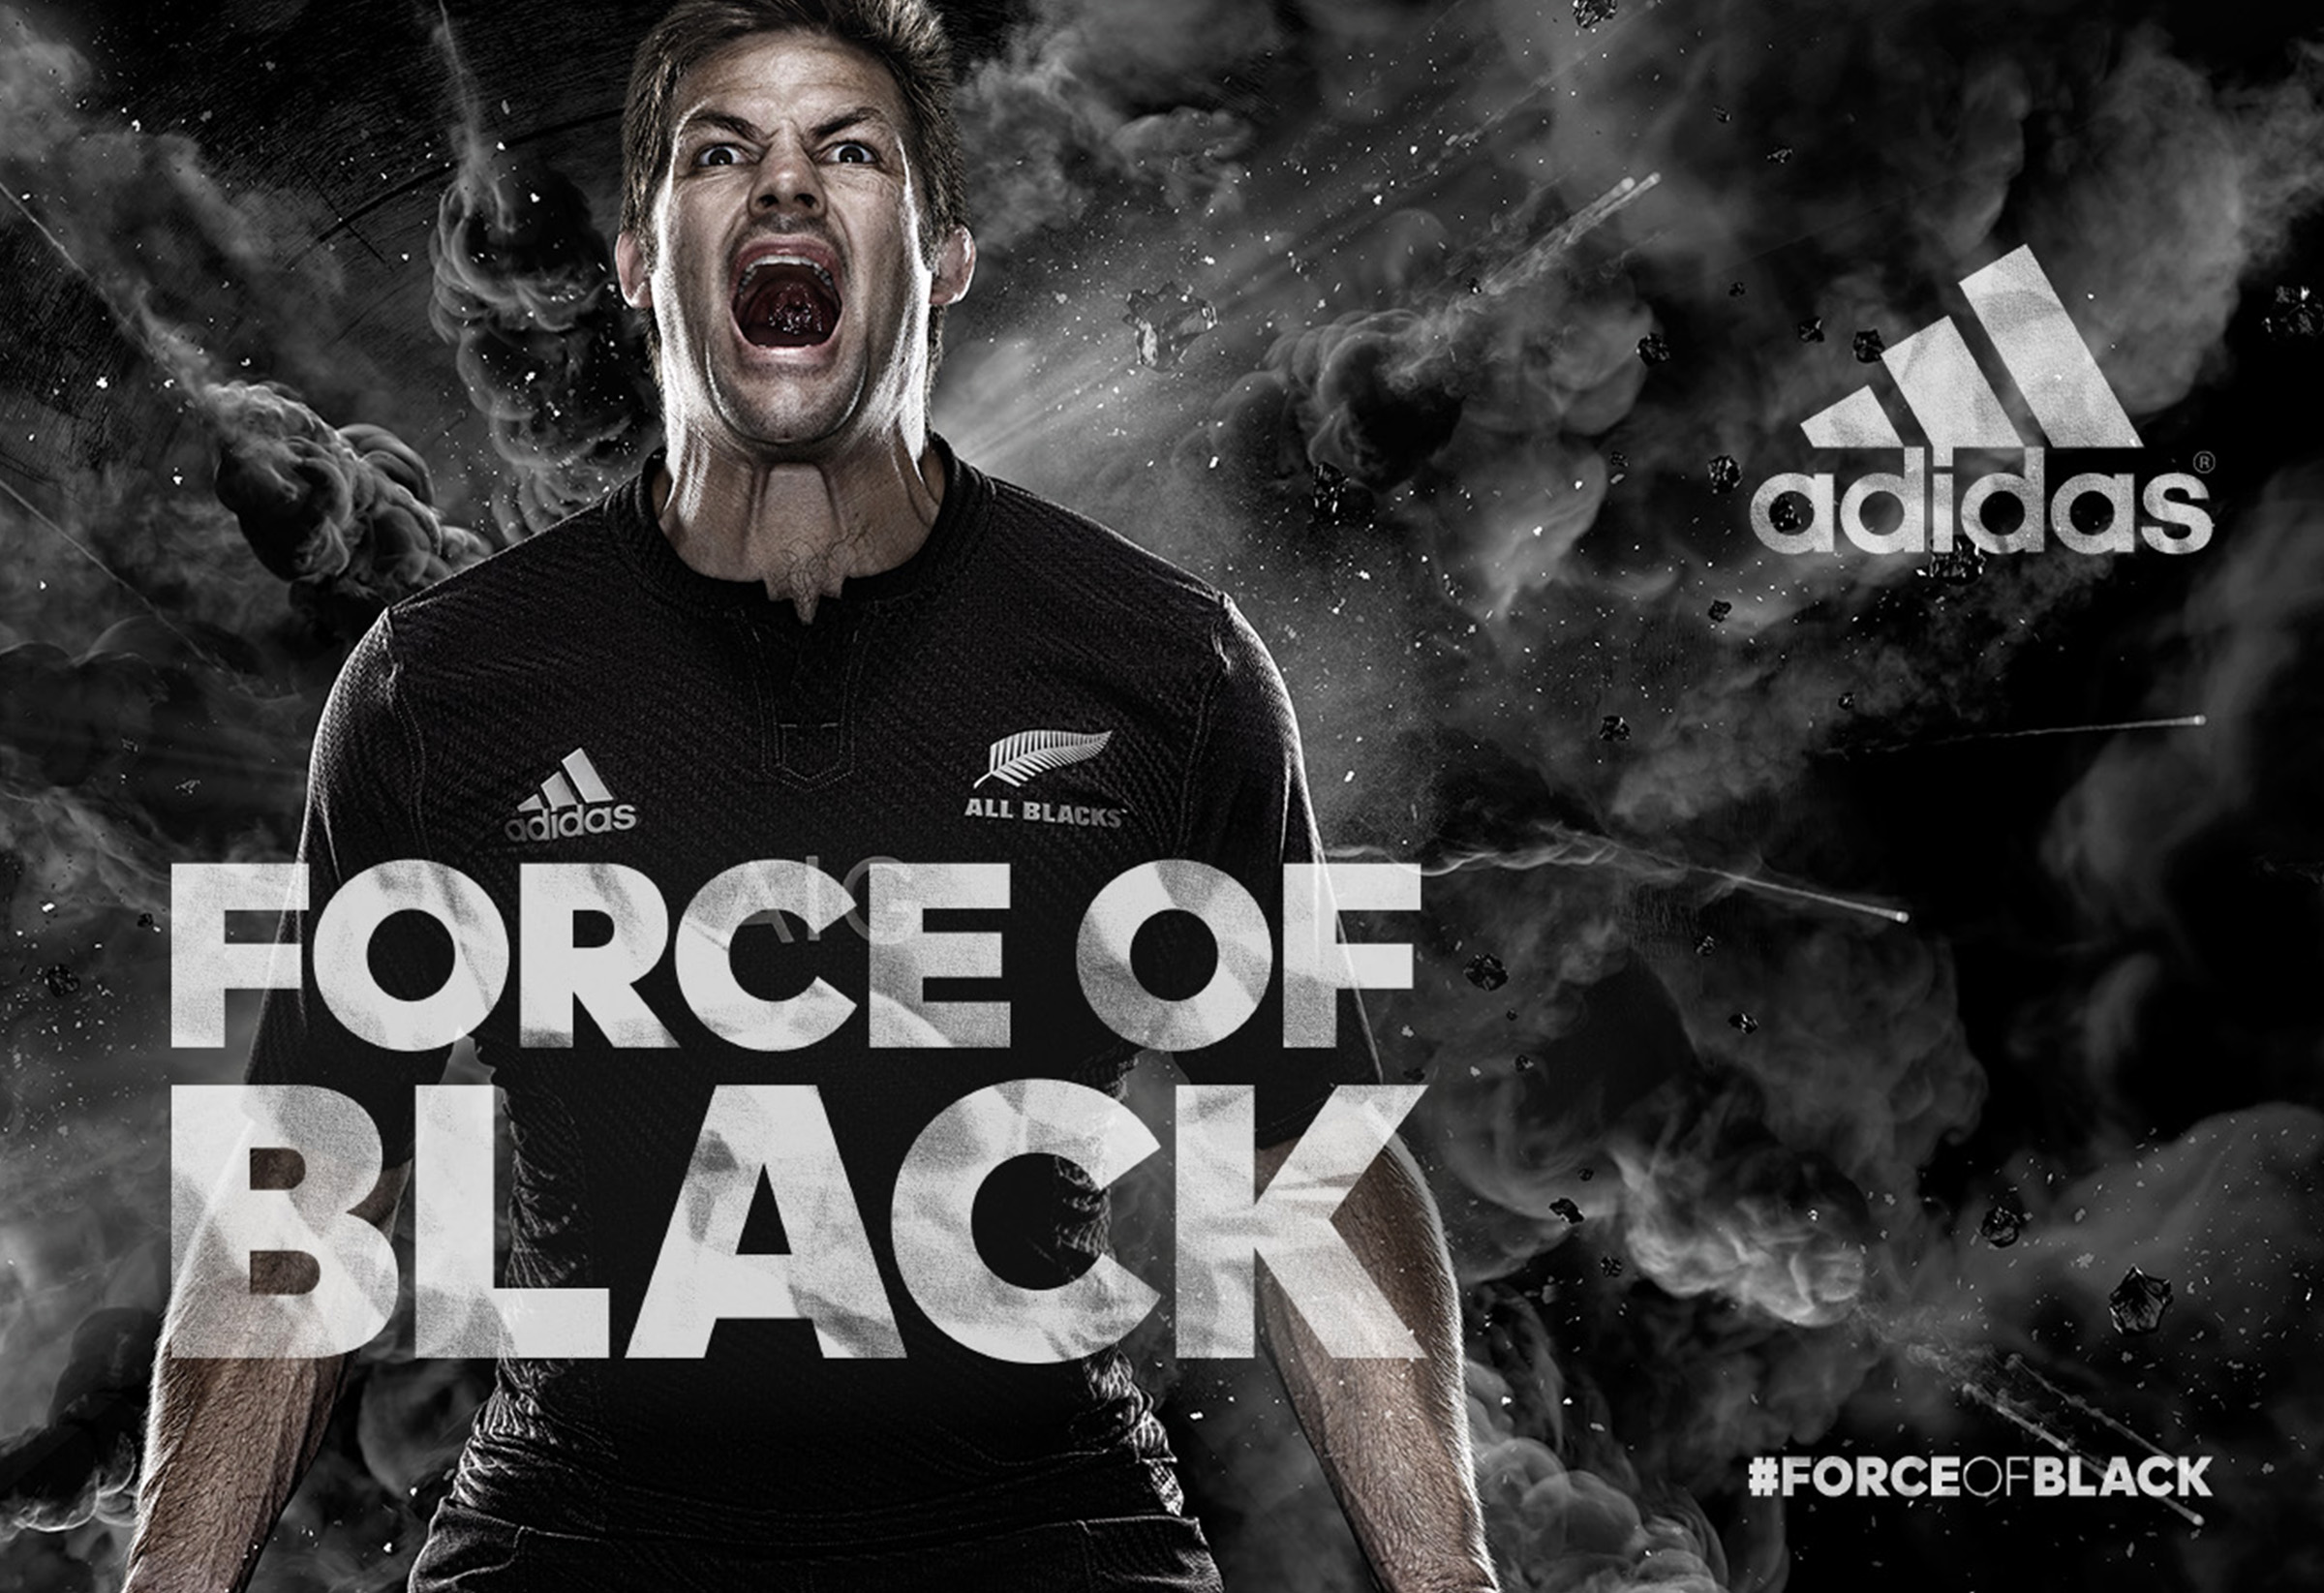 Adidas Rugby All Blacks Force of Black